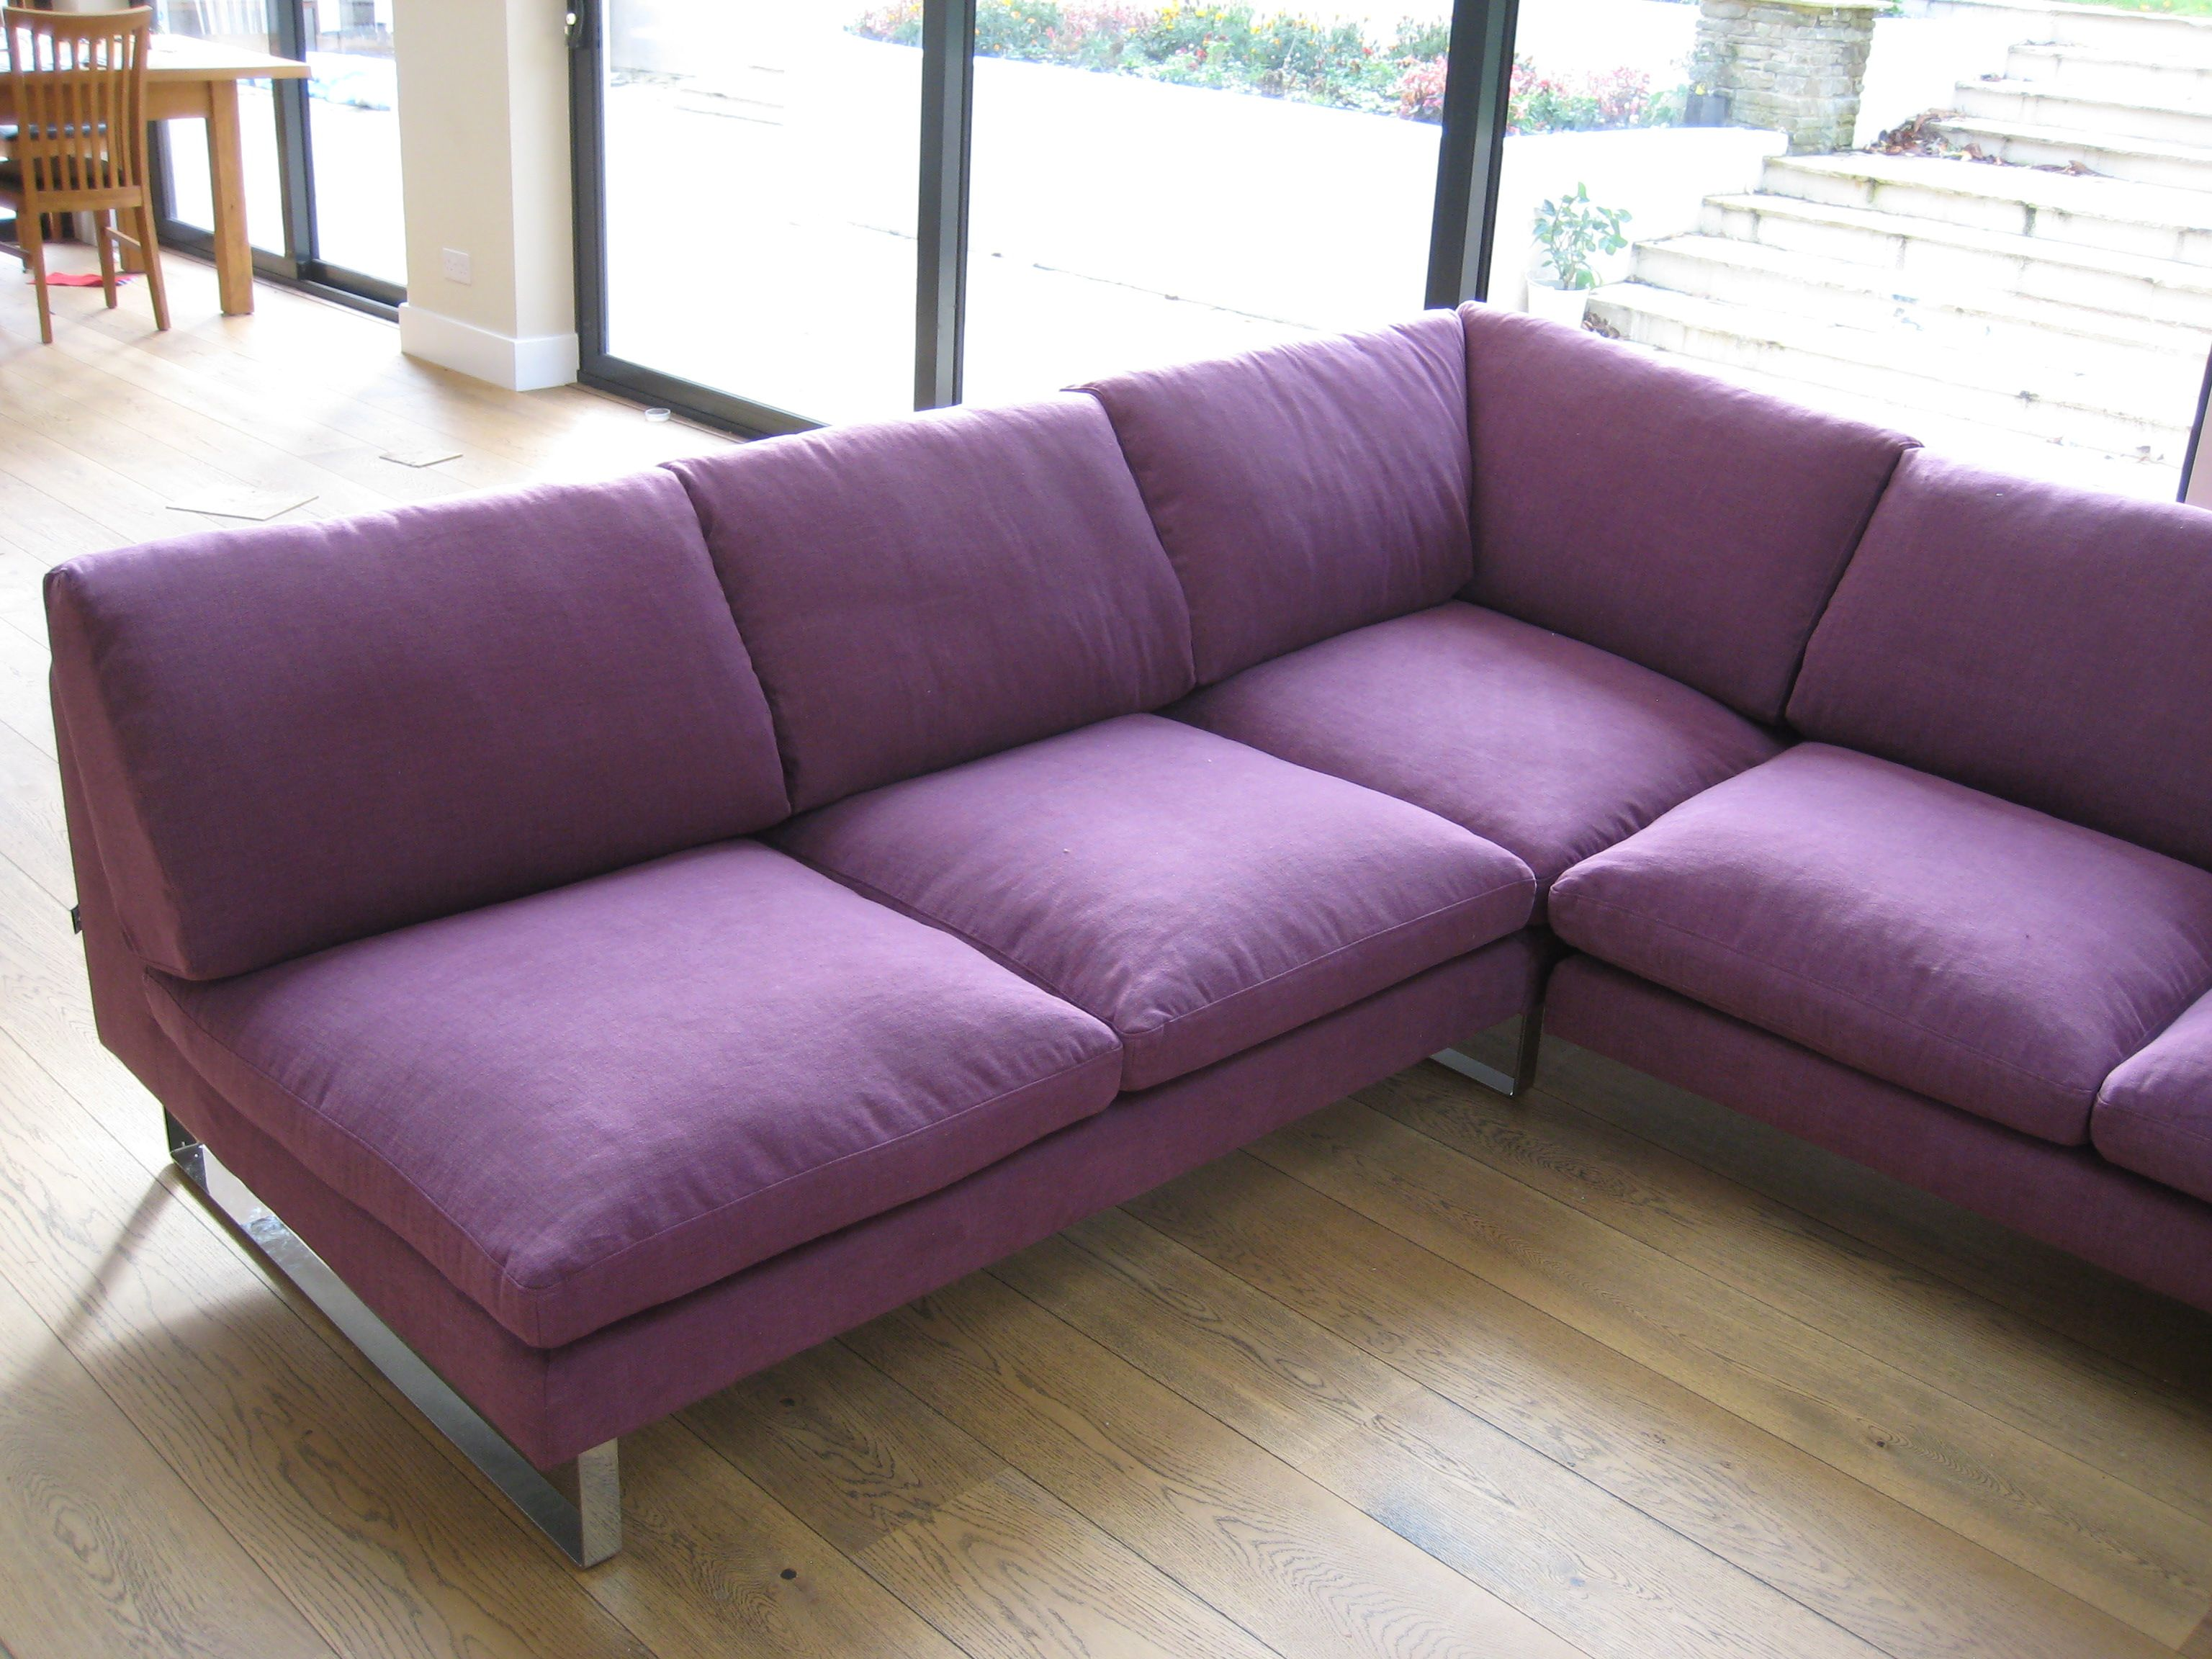 Bespoke Option   We Upholster The Armless Sofa Sections Locally If This  Open Plan Look Is Required.